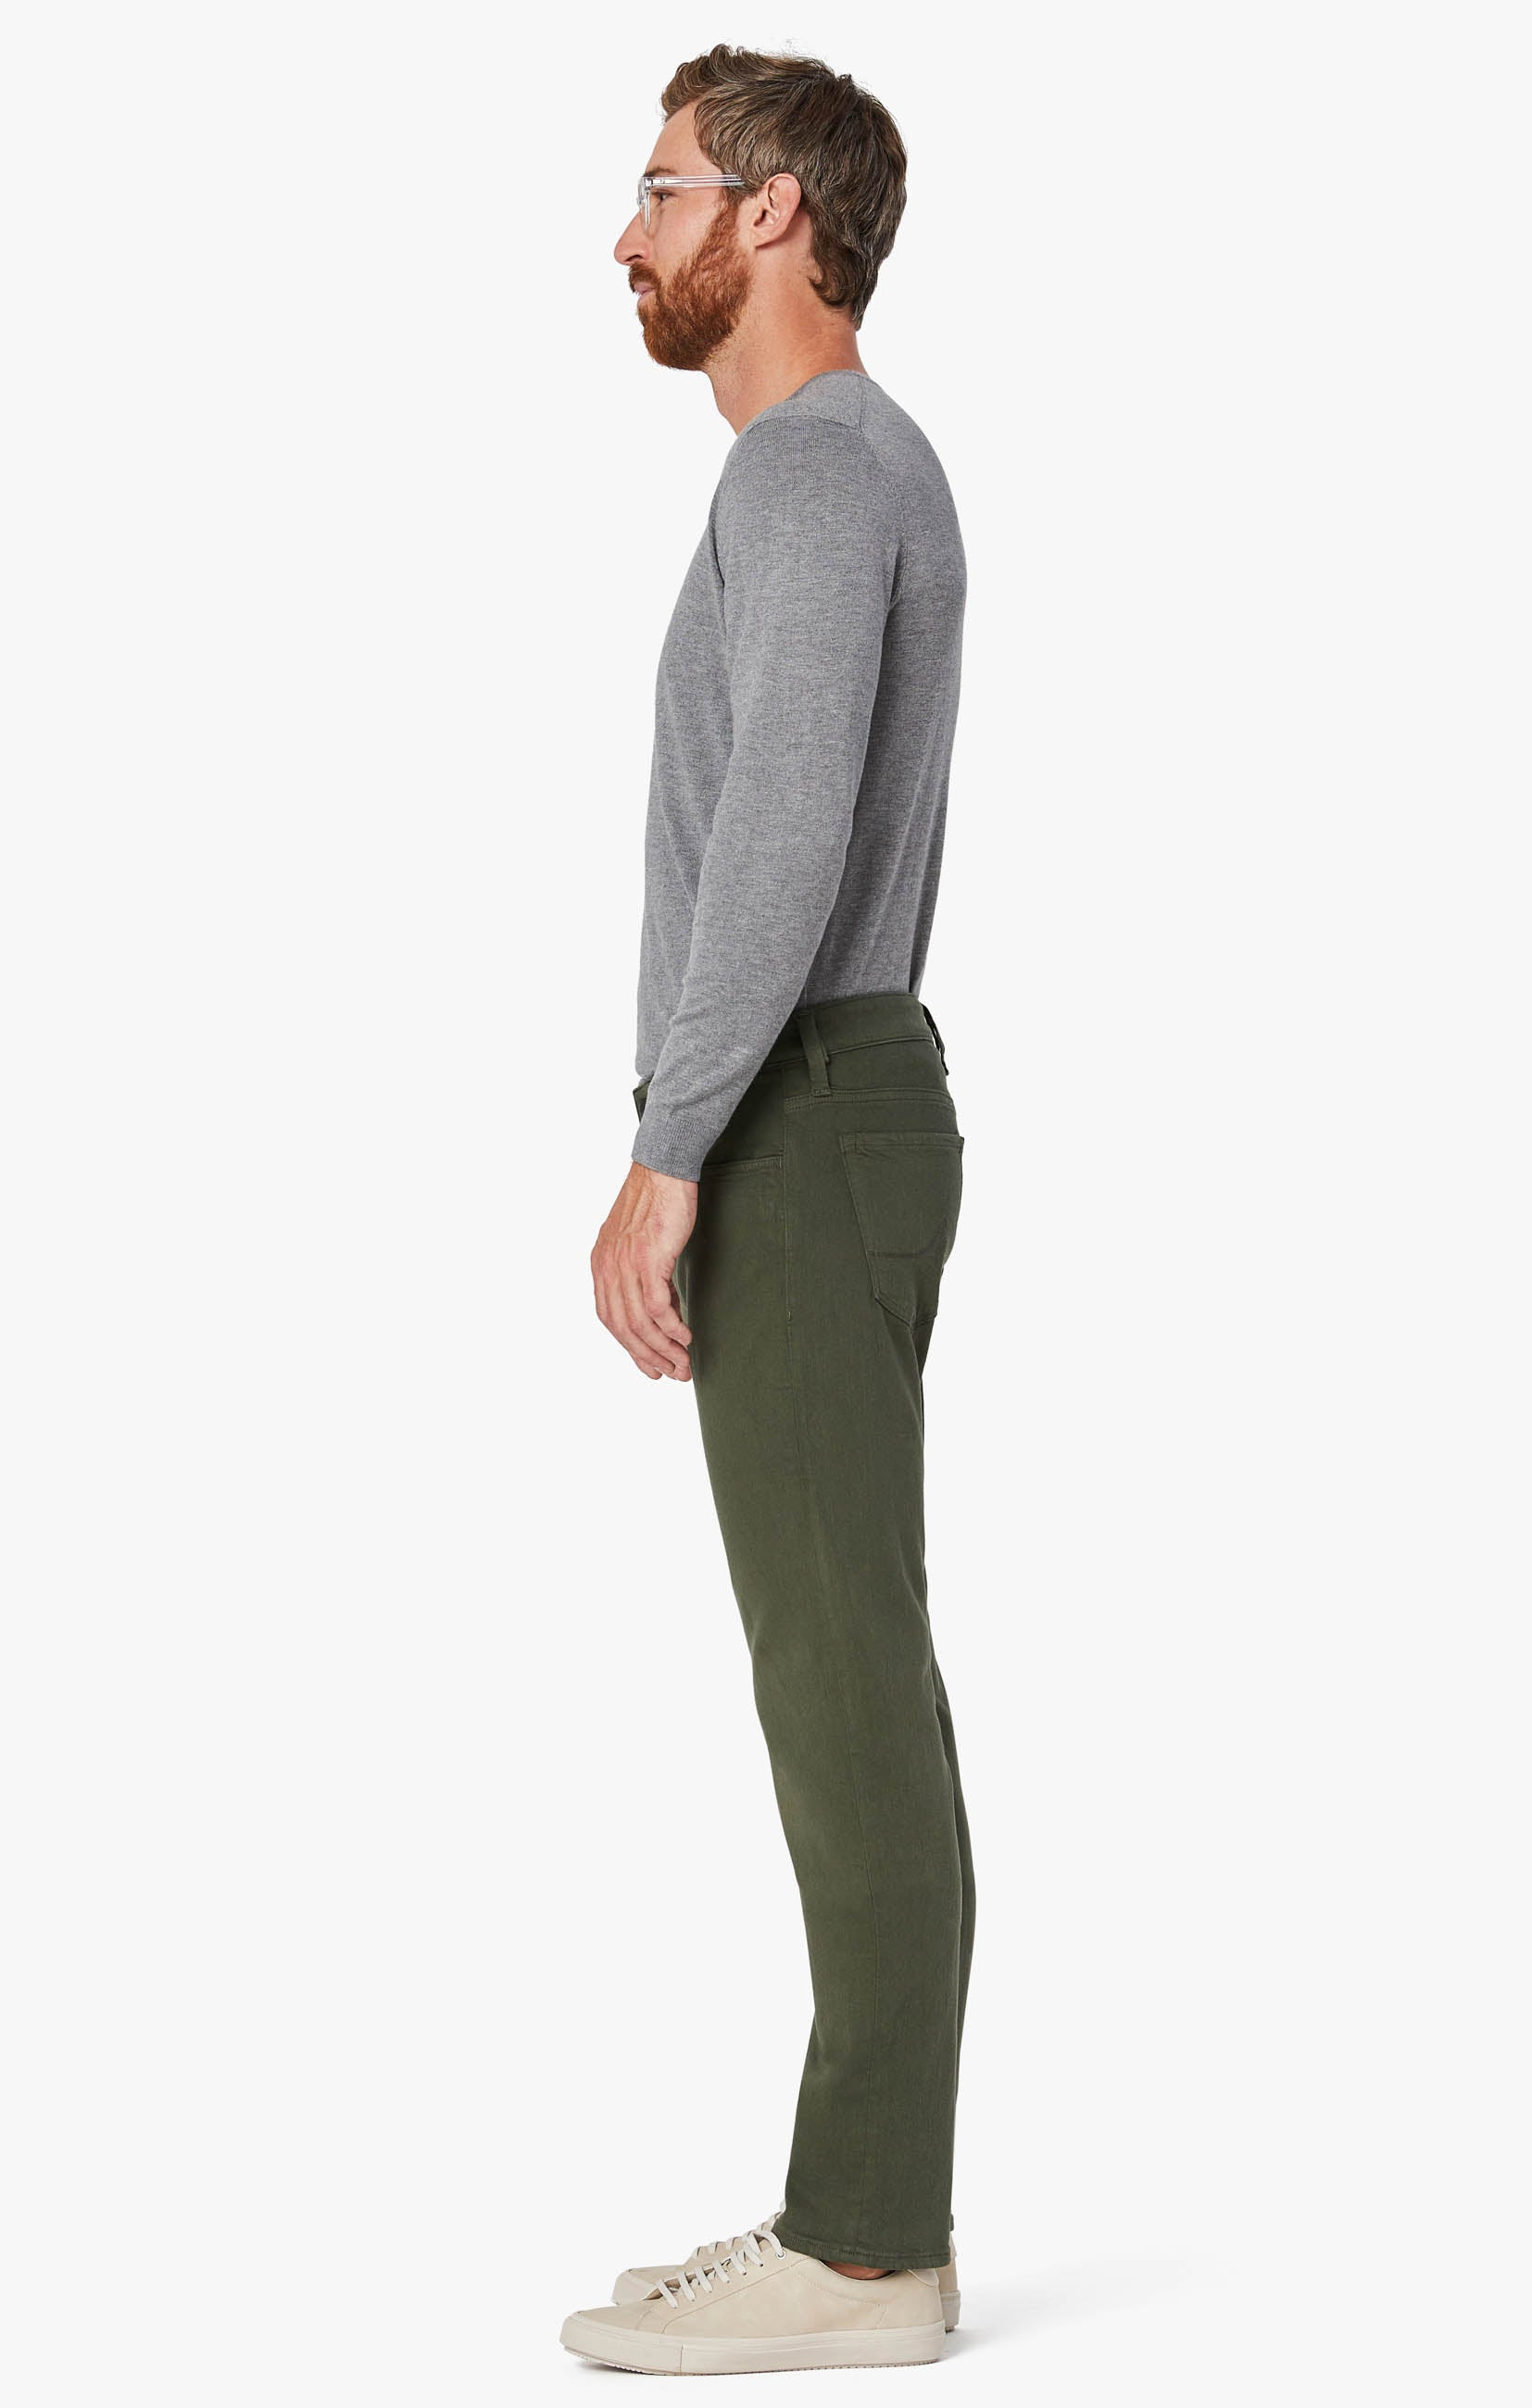 Courage Straight Leg Pants In Military Green Comfort Image 8